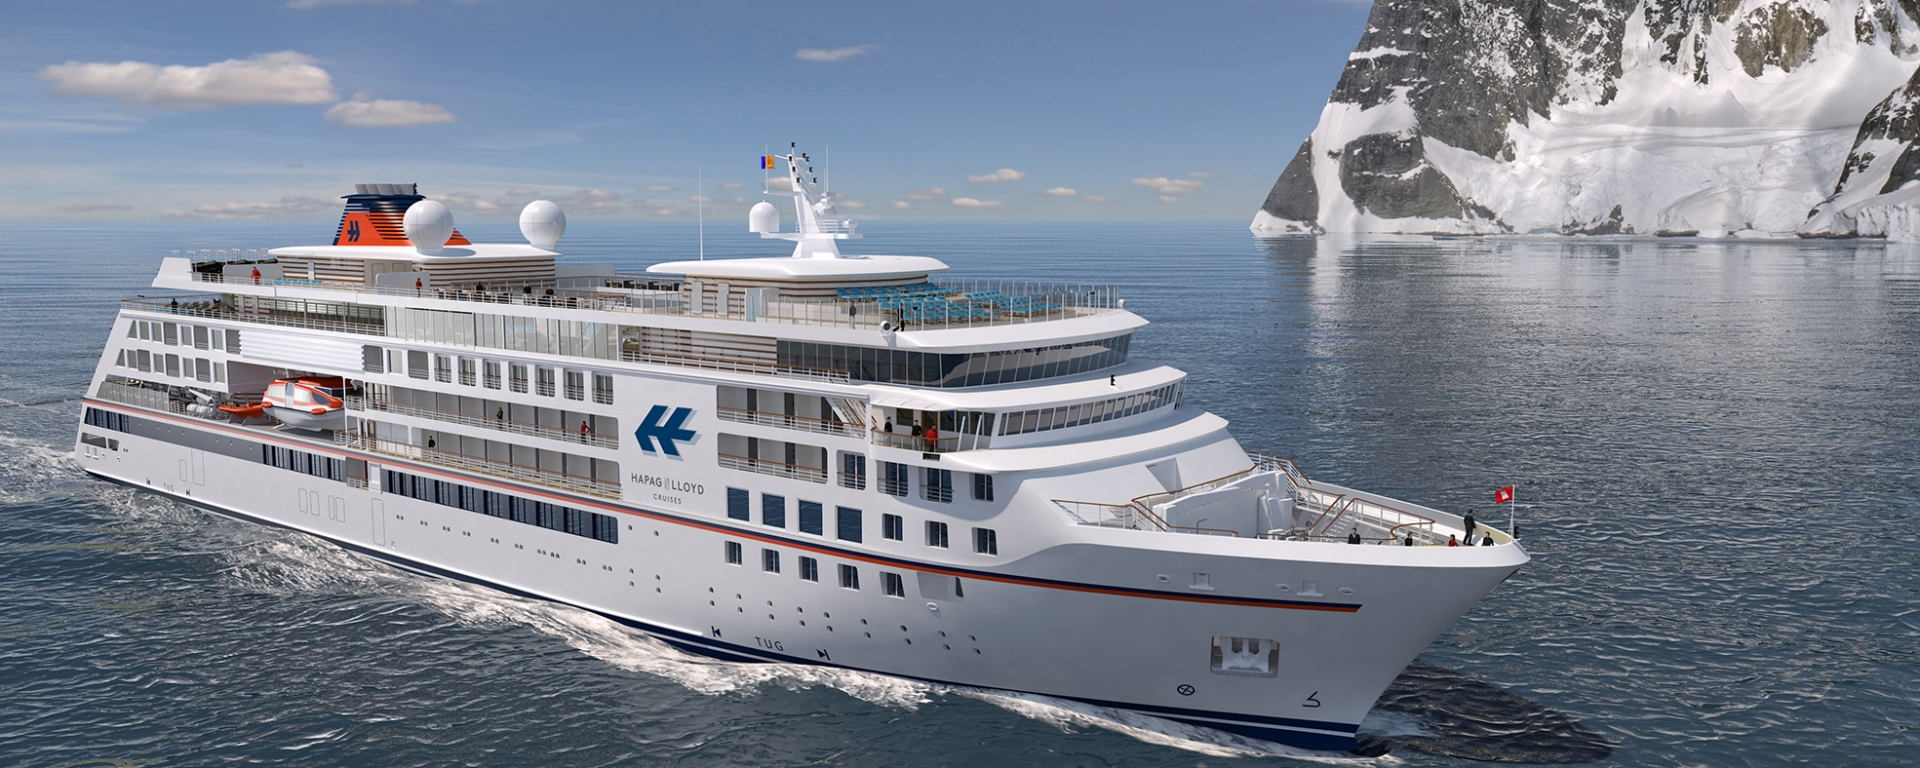 Vessels for Hapag-Lloyd Cruises are designed for cruises in the Arctic, Antarctica and Amazon. They are 138m long, can accommodate 240 passengers.